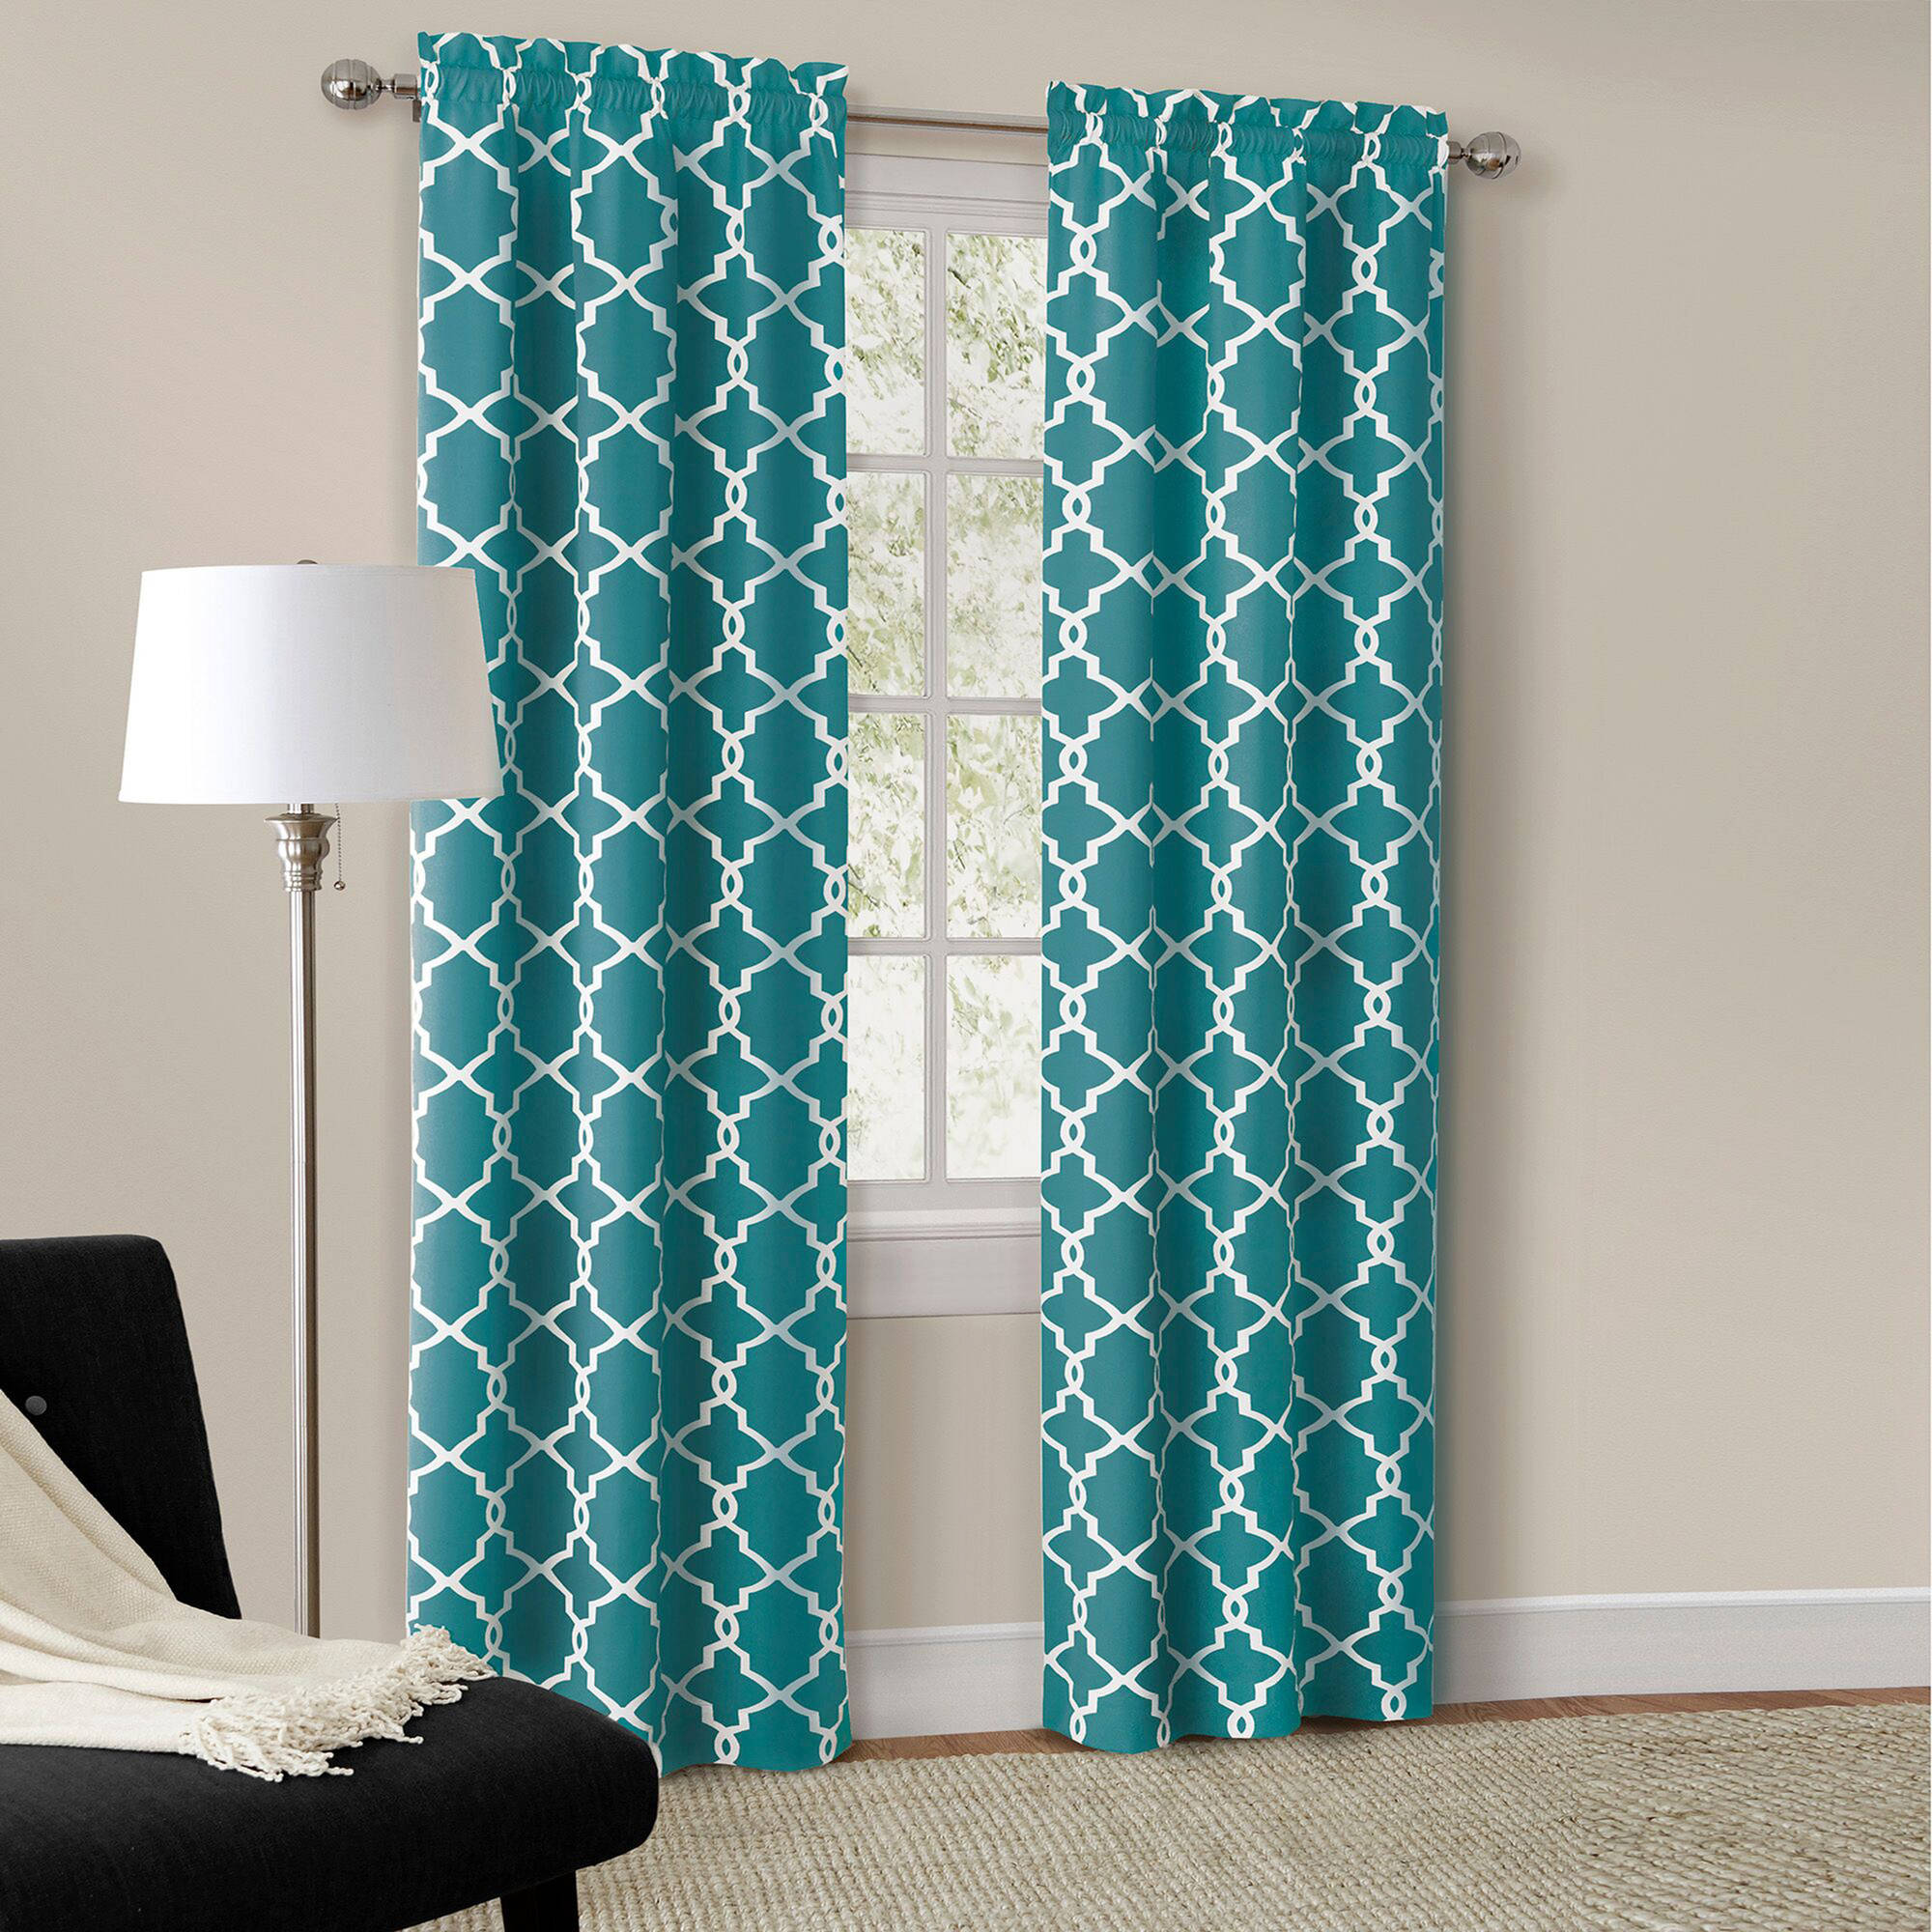 ideas windows for styles your interior beautiful window home designs curtain design at curtains bedroom with